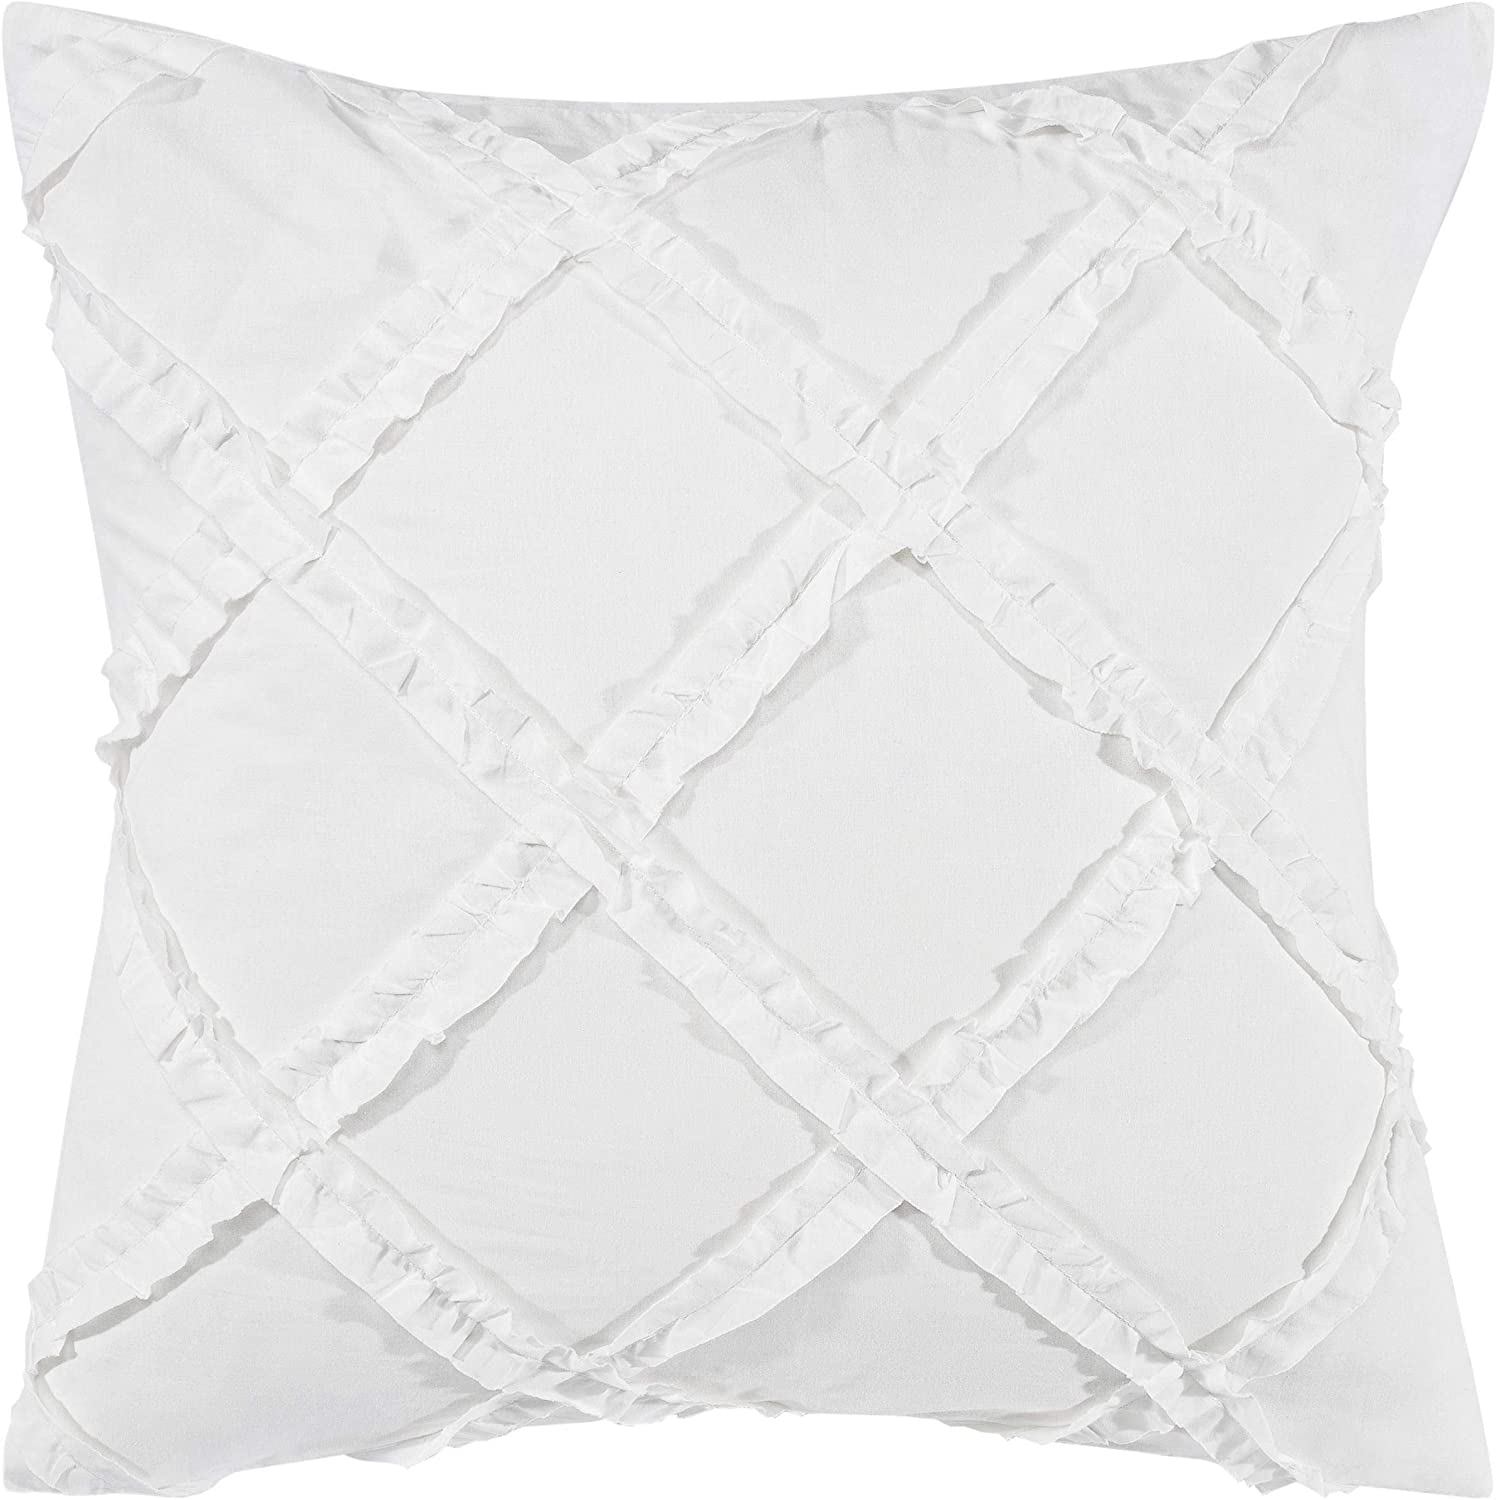 Laura Ashley Home | Adelina Bedding Collection | Premium Quality Pillow Sham, Decorative Pillow Case for Bedroom Living Room and Home Décor, 26x26, White